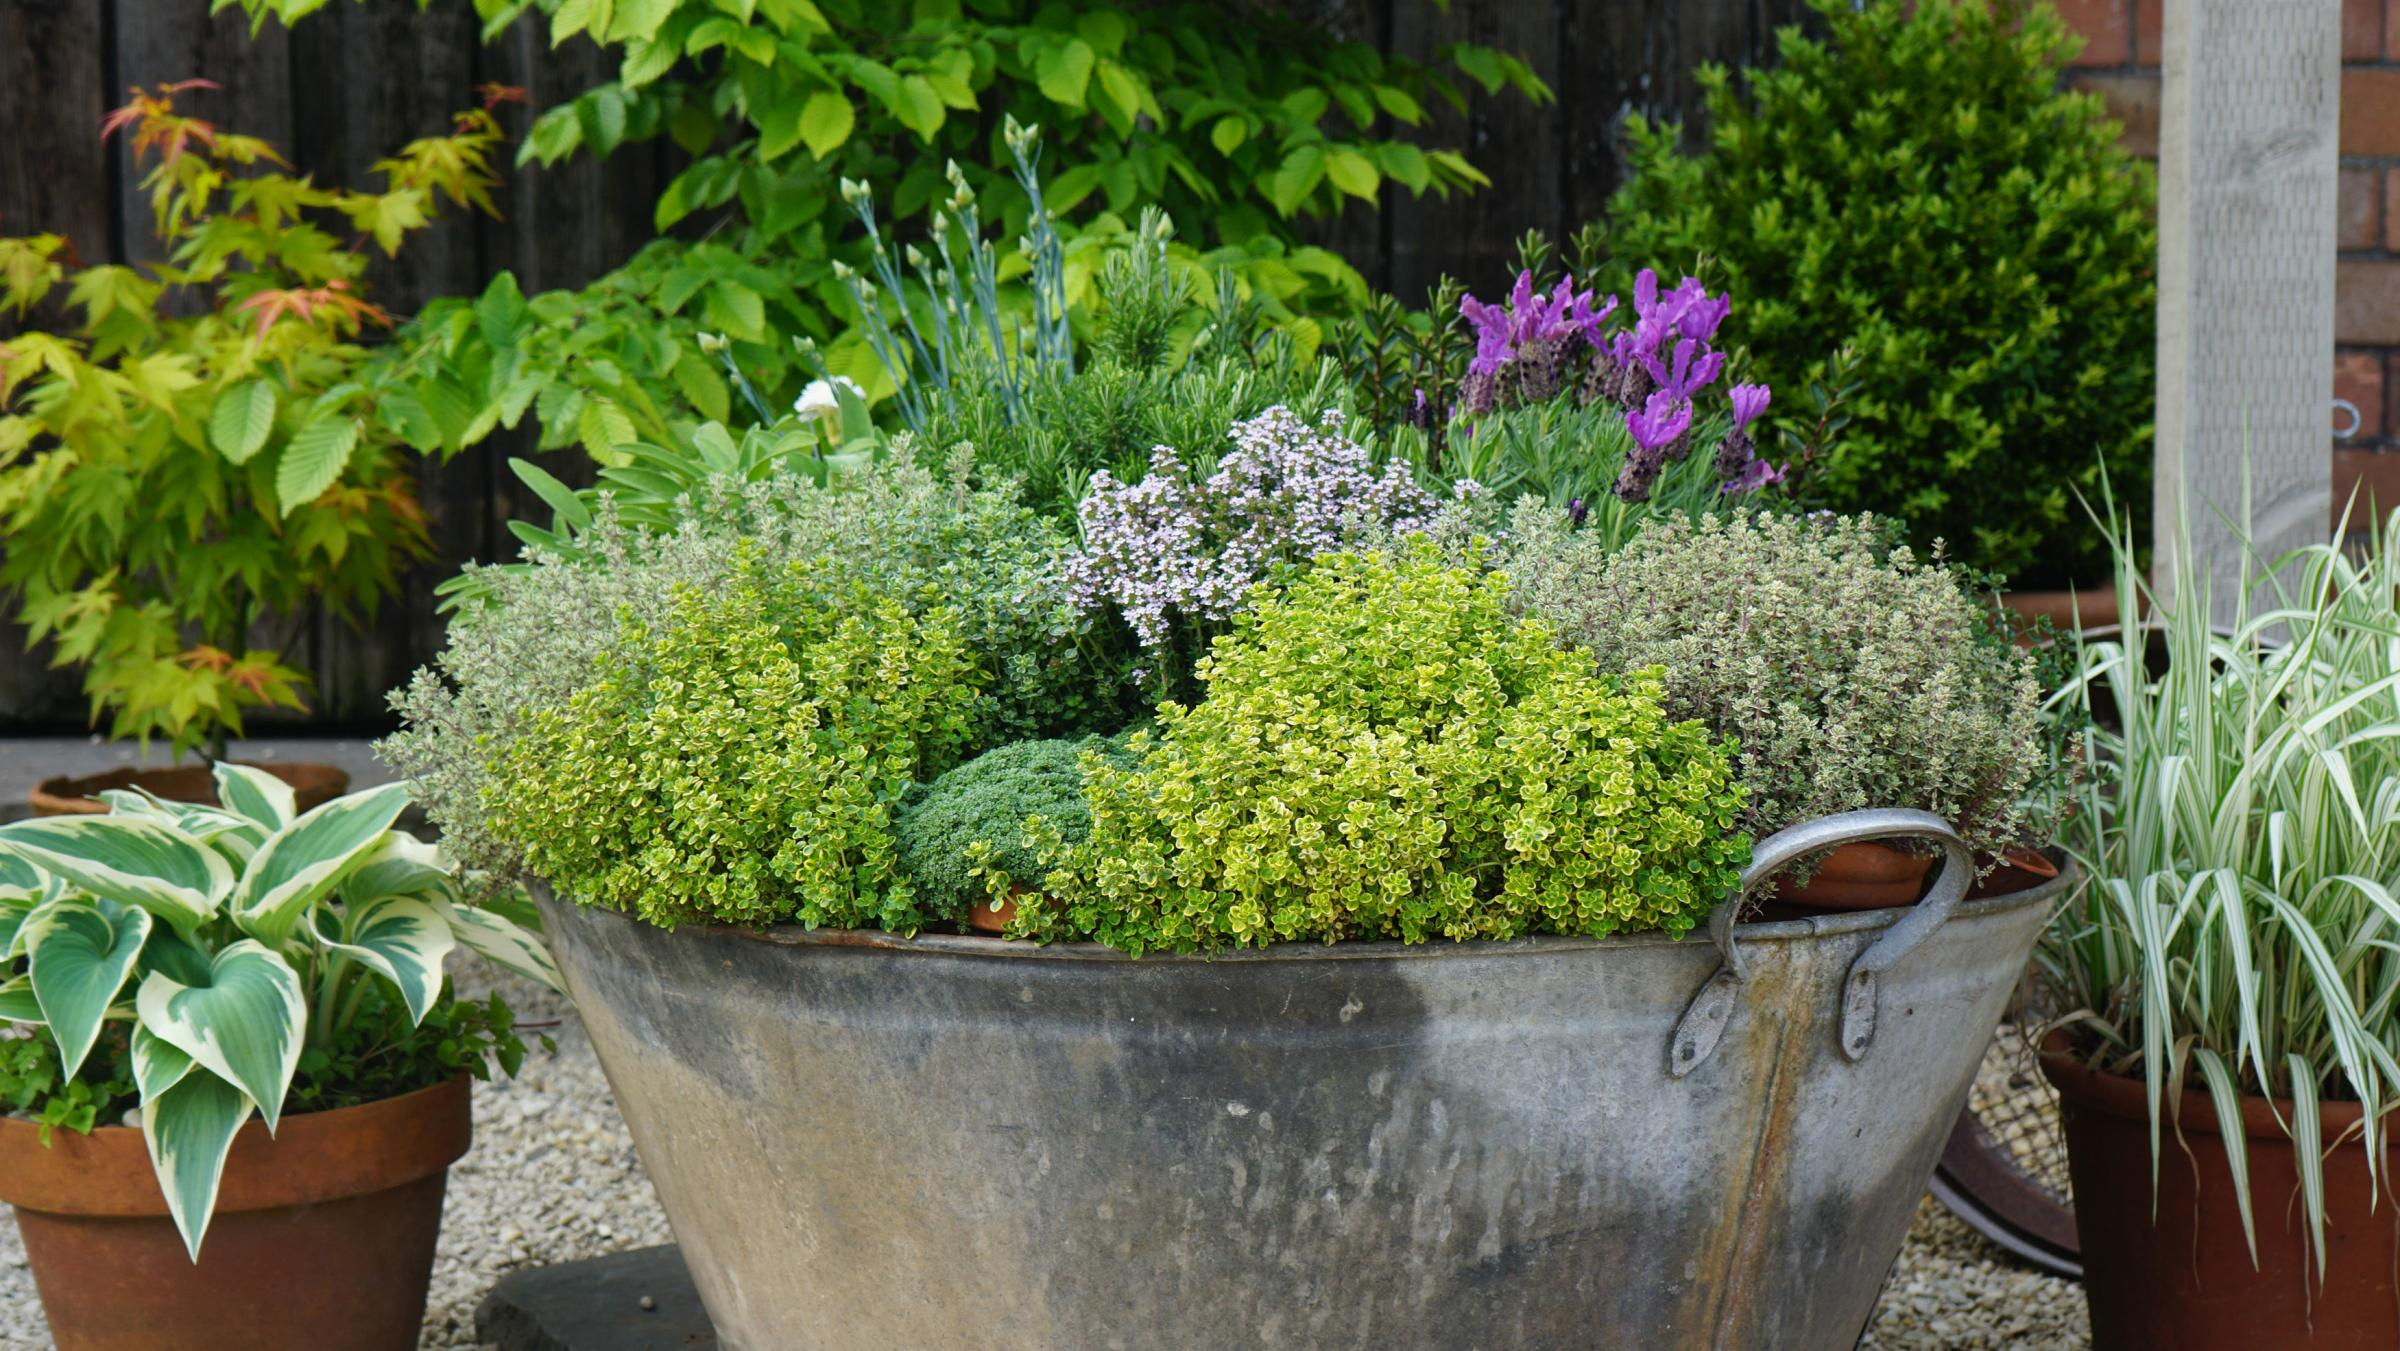 Gardening: How to combine vegetables and flowers for a pretty display